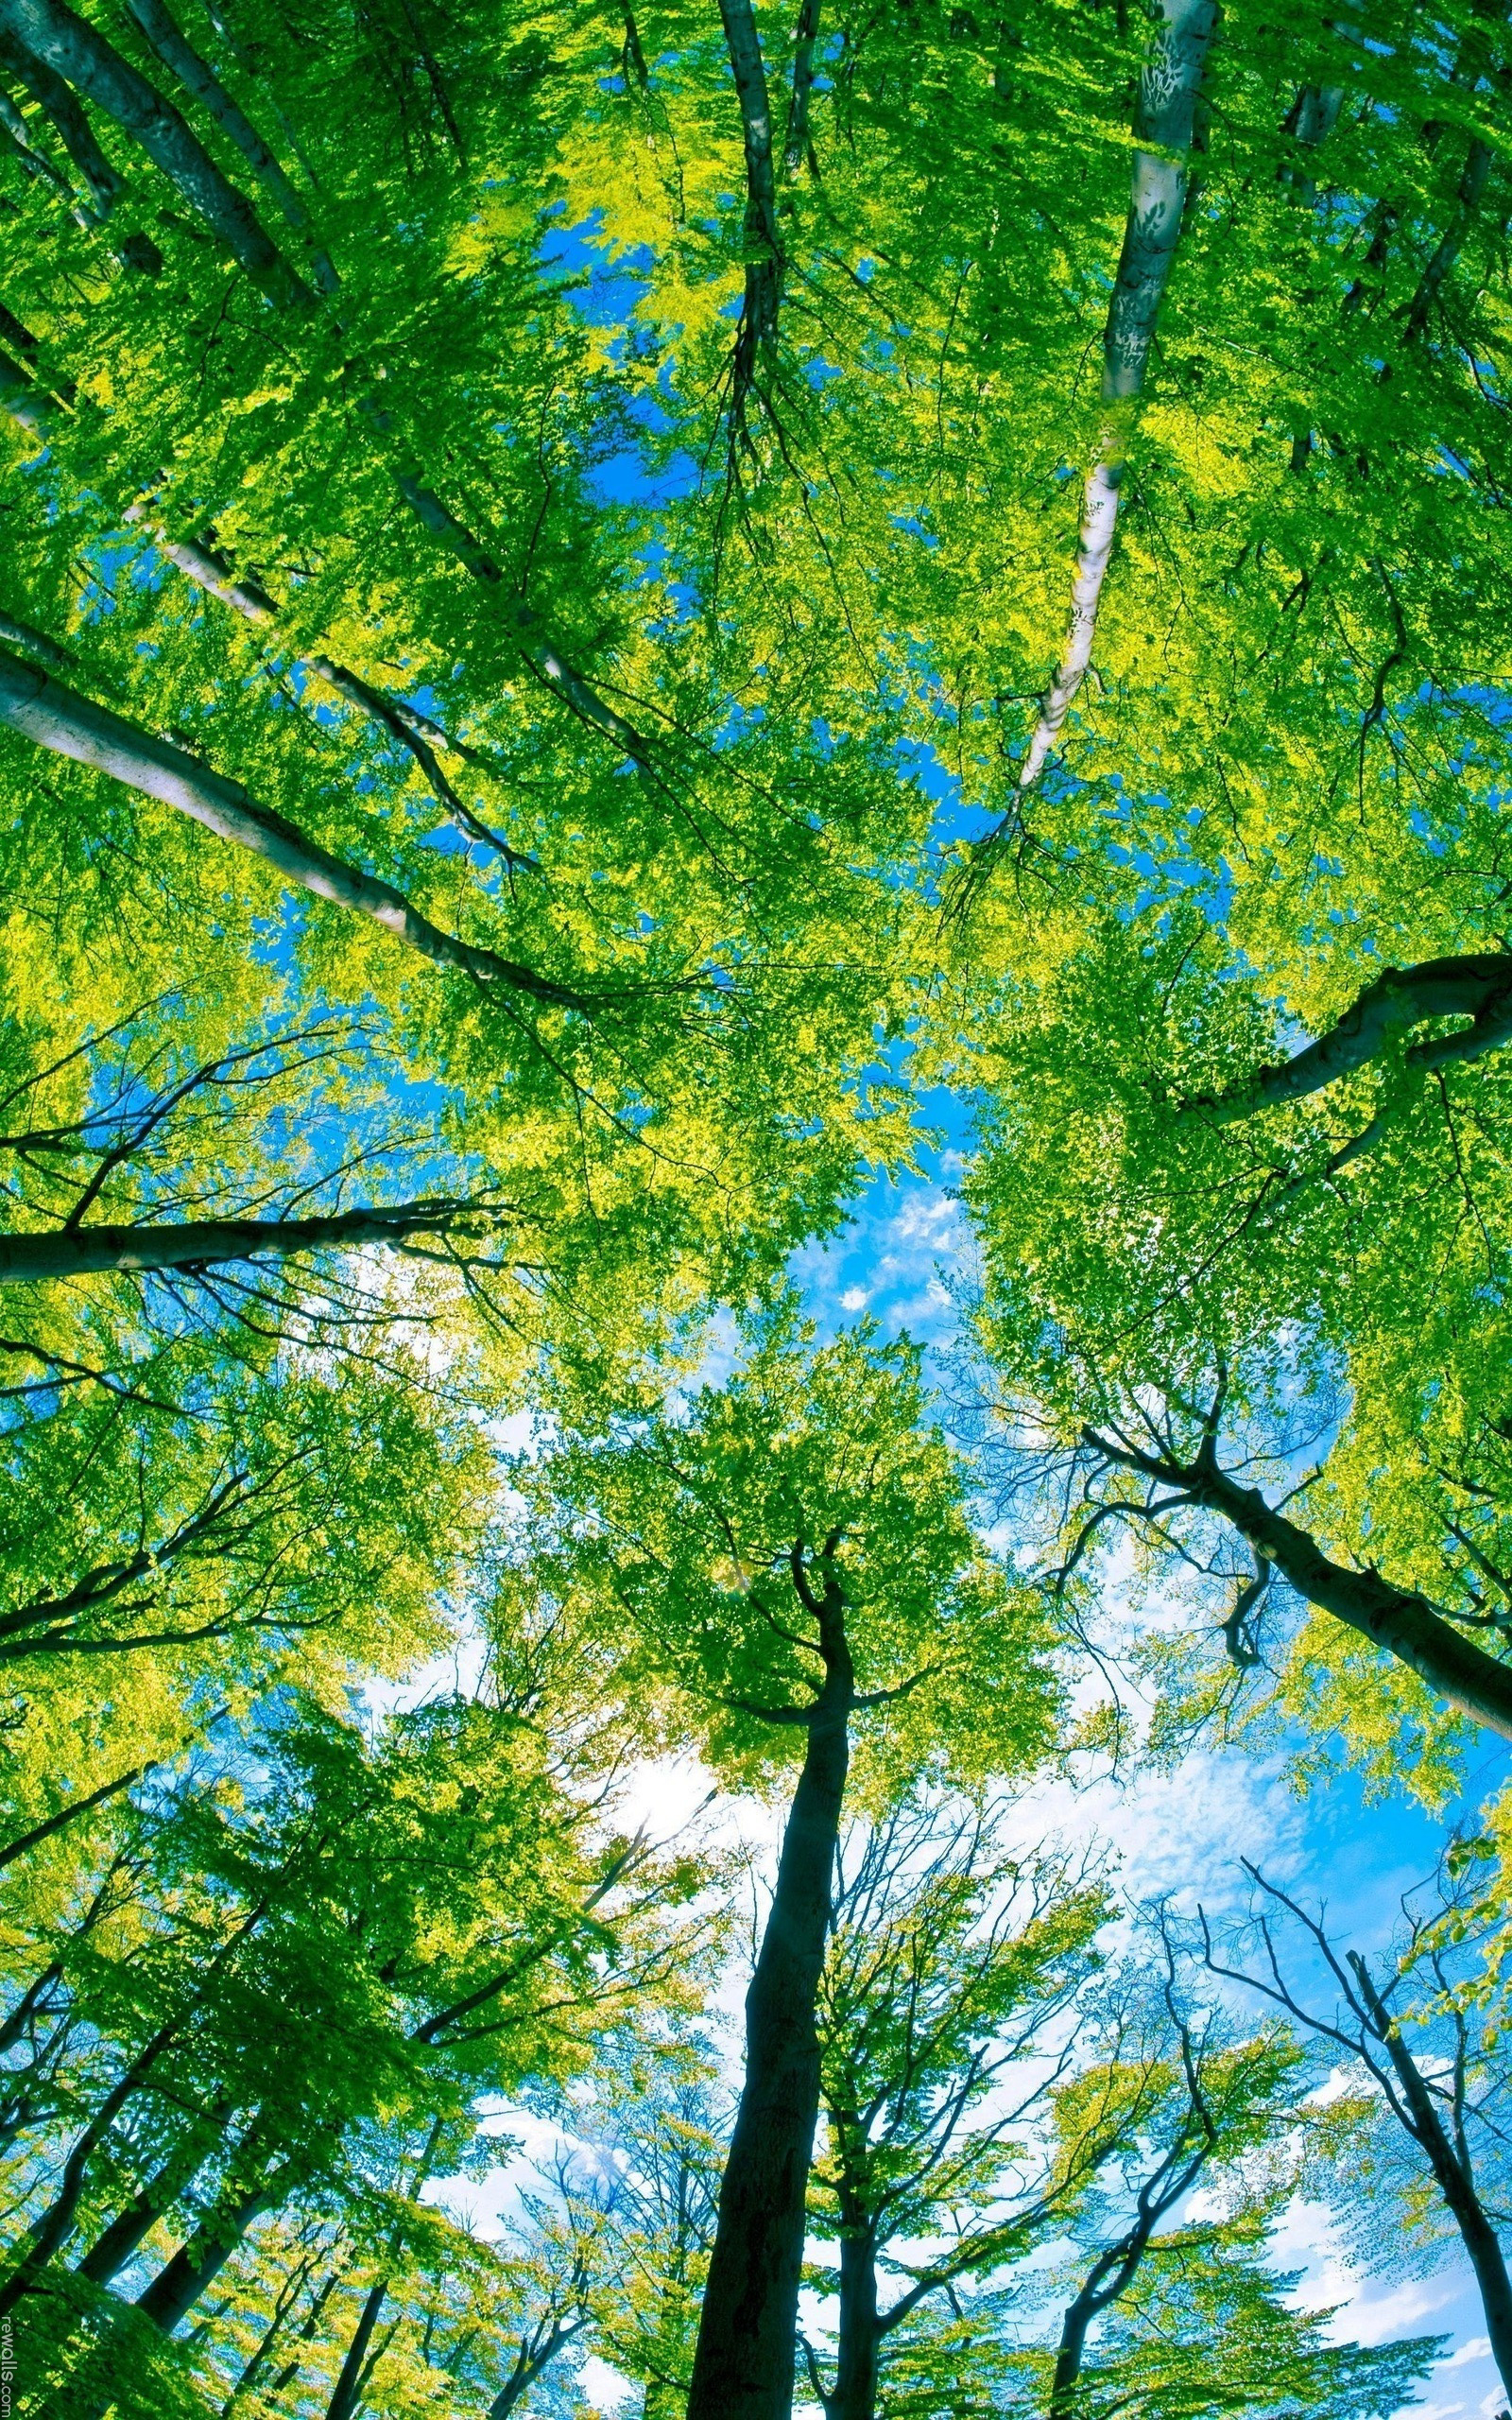 Sanctuary_forest_trees_from_below_2560x1600-port